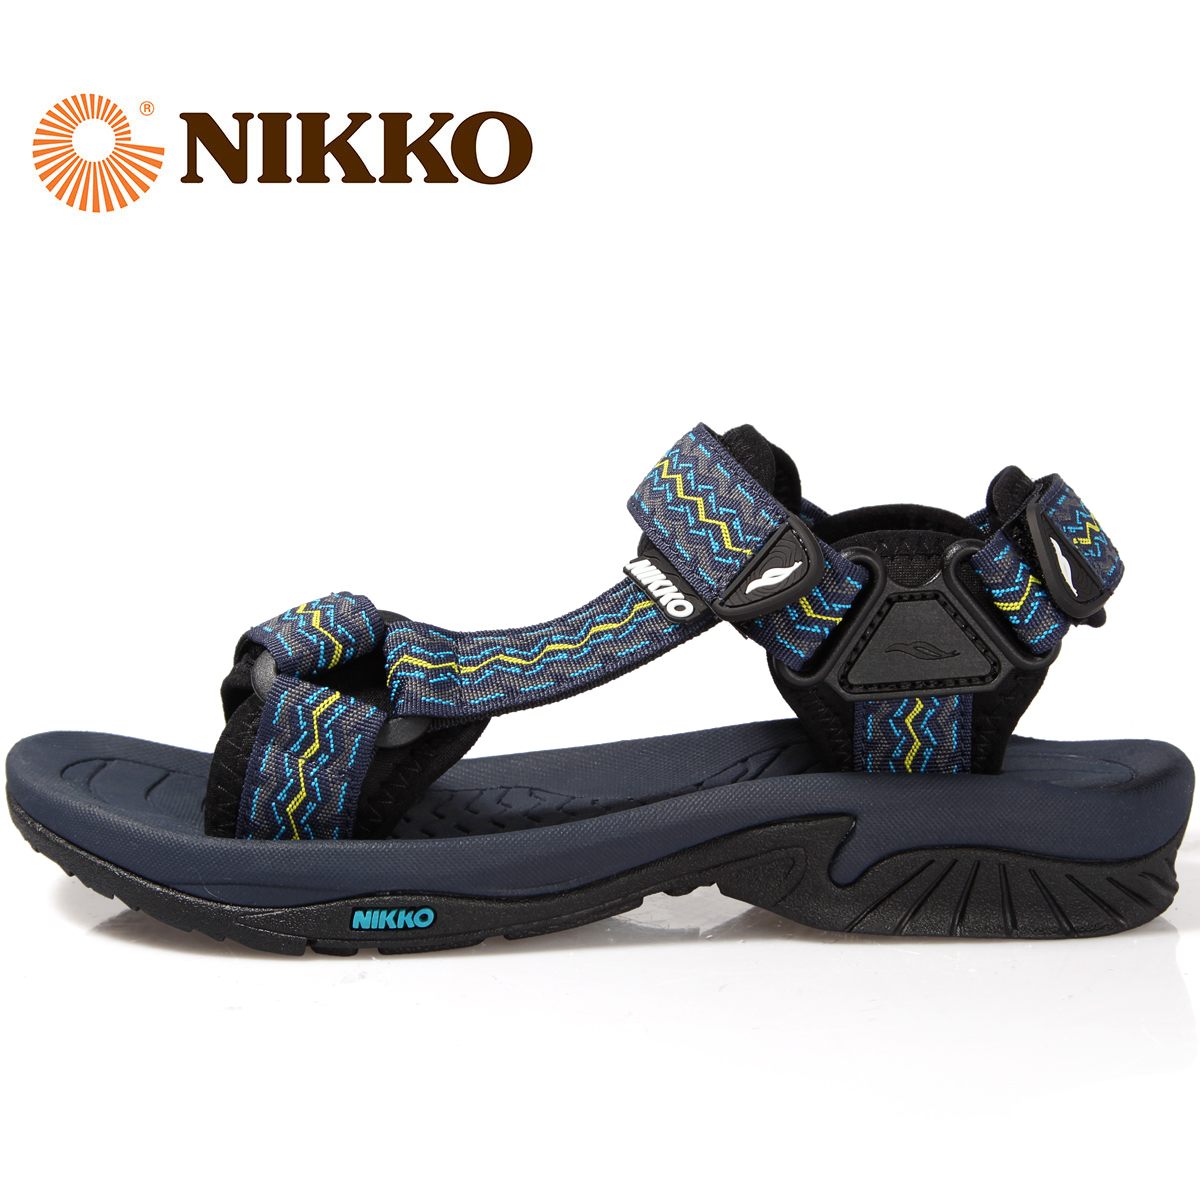 Nikko sandals day high outdoor sandals male beach shoes couple outdoor  beach sandals men and women 5f4a2ce6b2